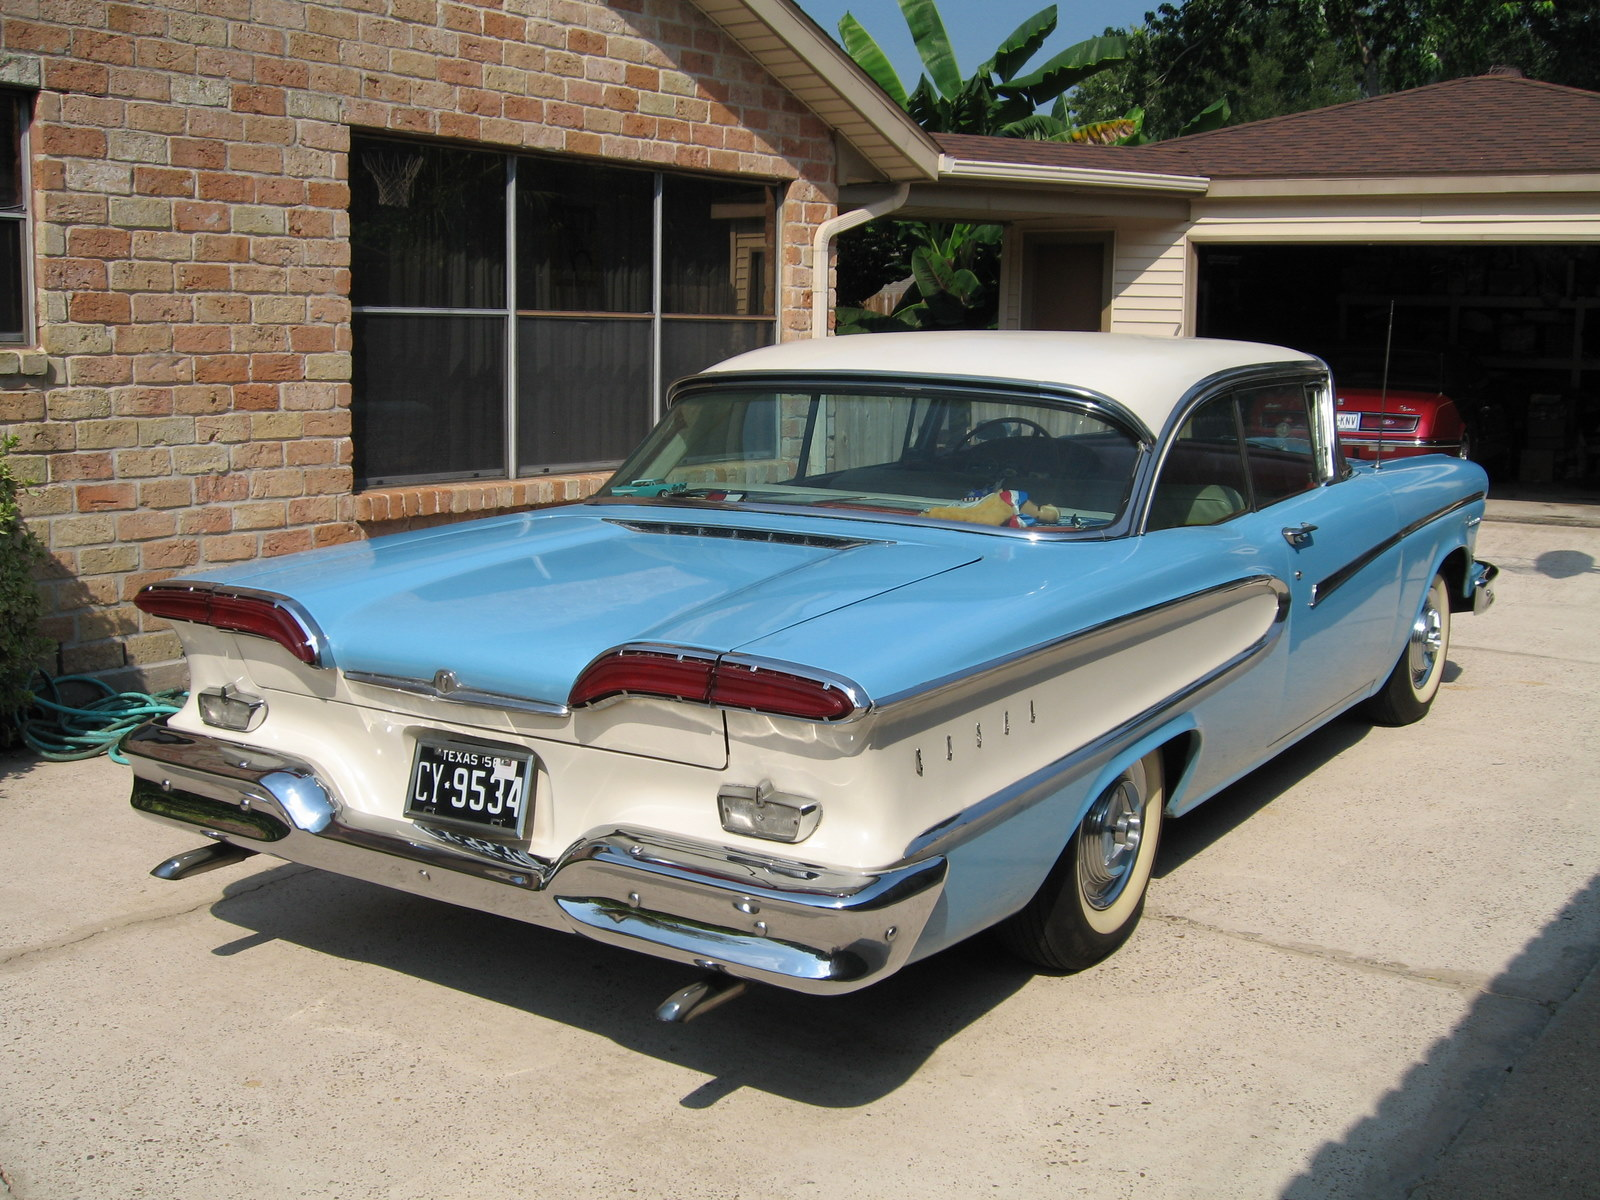 Edsel Famous Henry Ford Son Or Infamous Car This